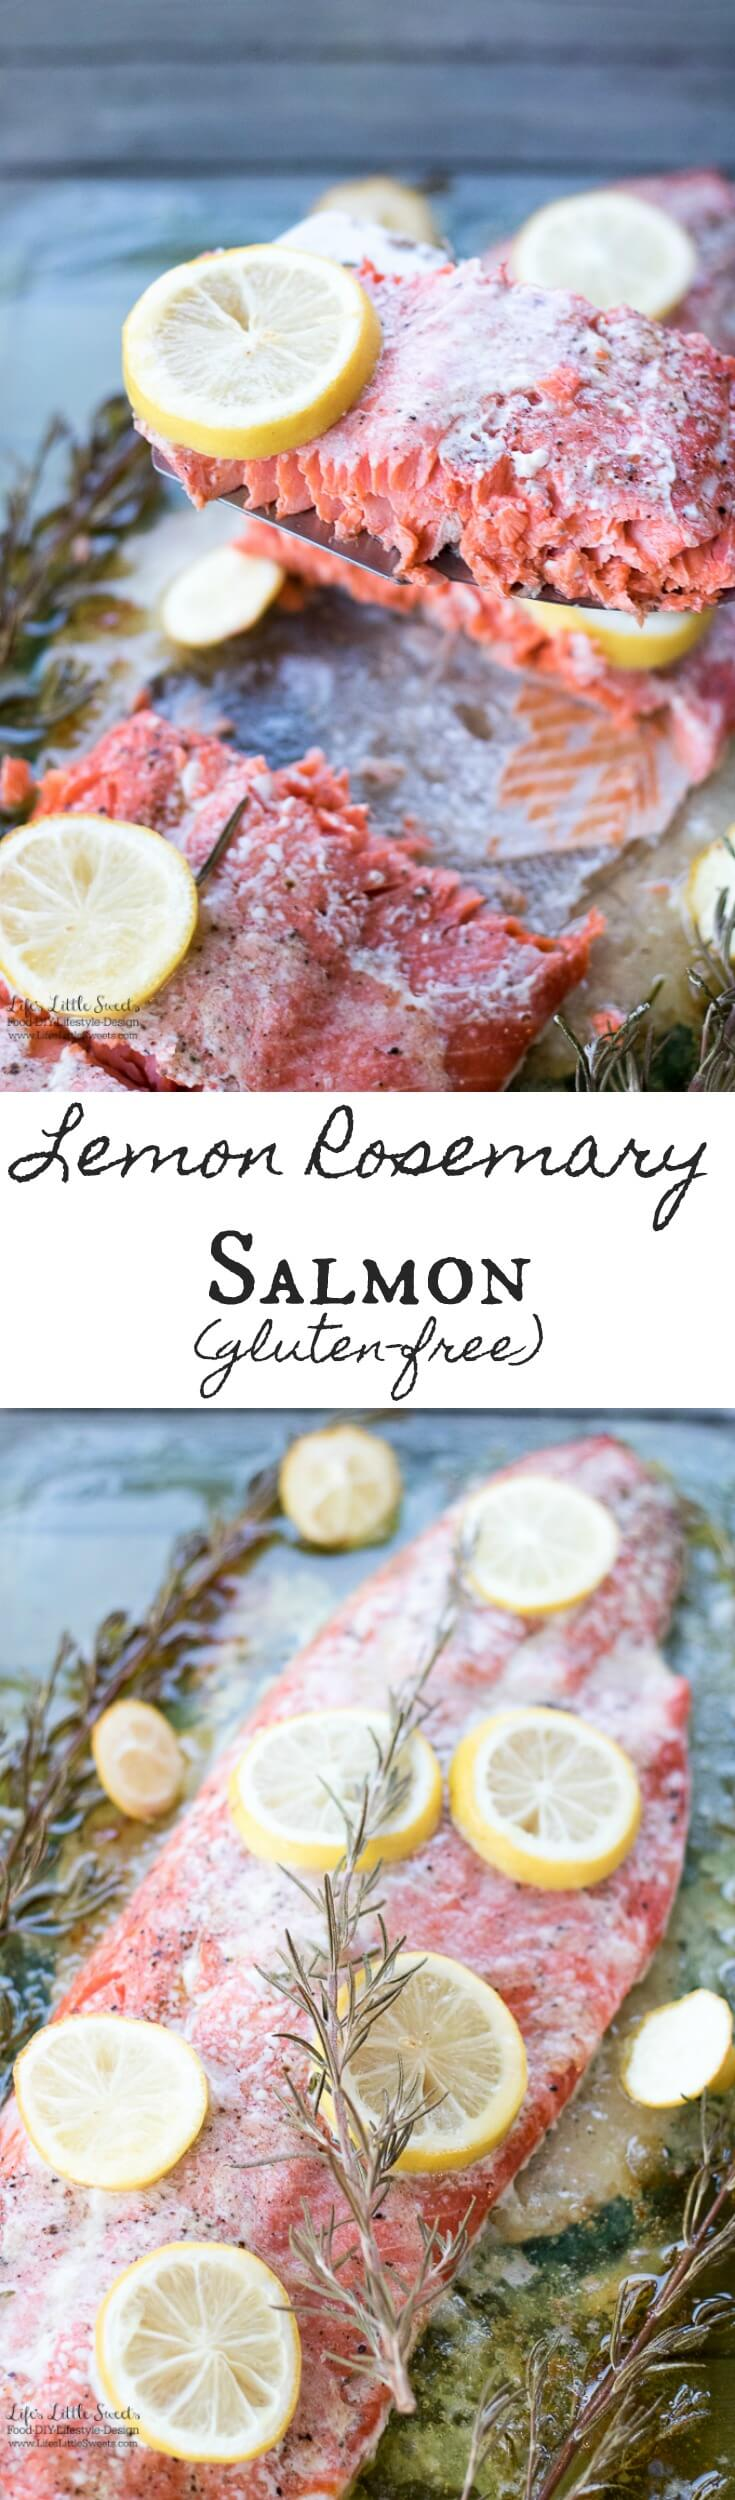 Lemon Rosemary Salmon is a bright, simple, savory and delicious Salmon recipe. (serves 4-6) www.lifeslittlesweets.com